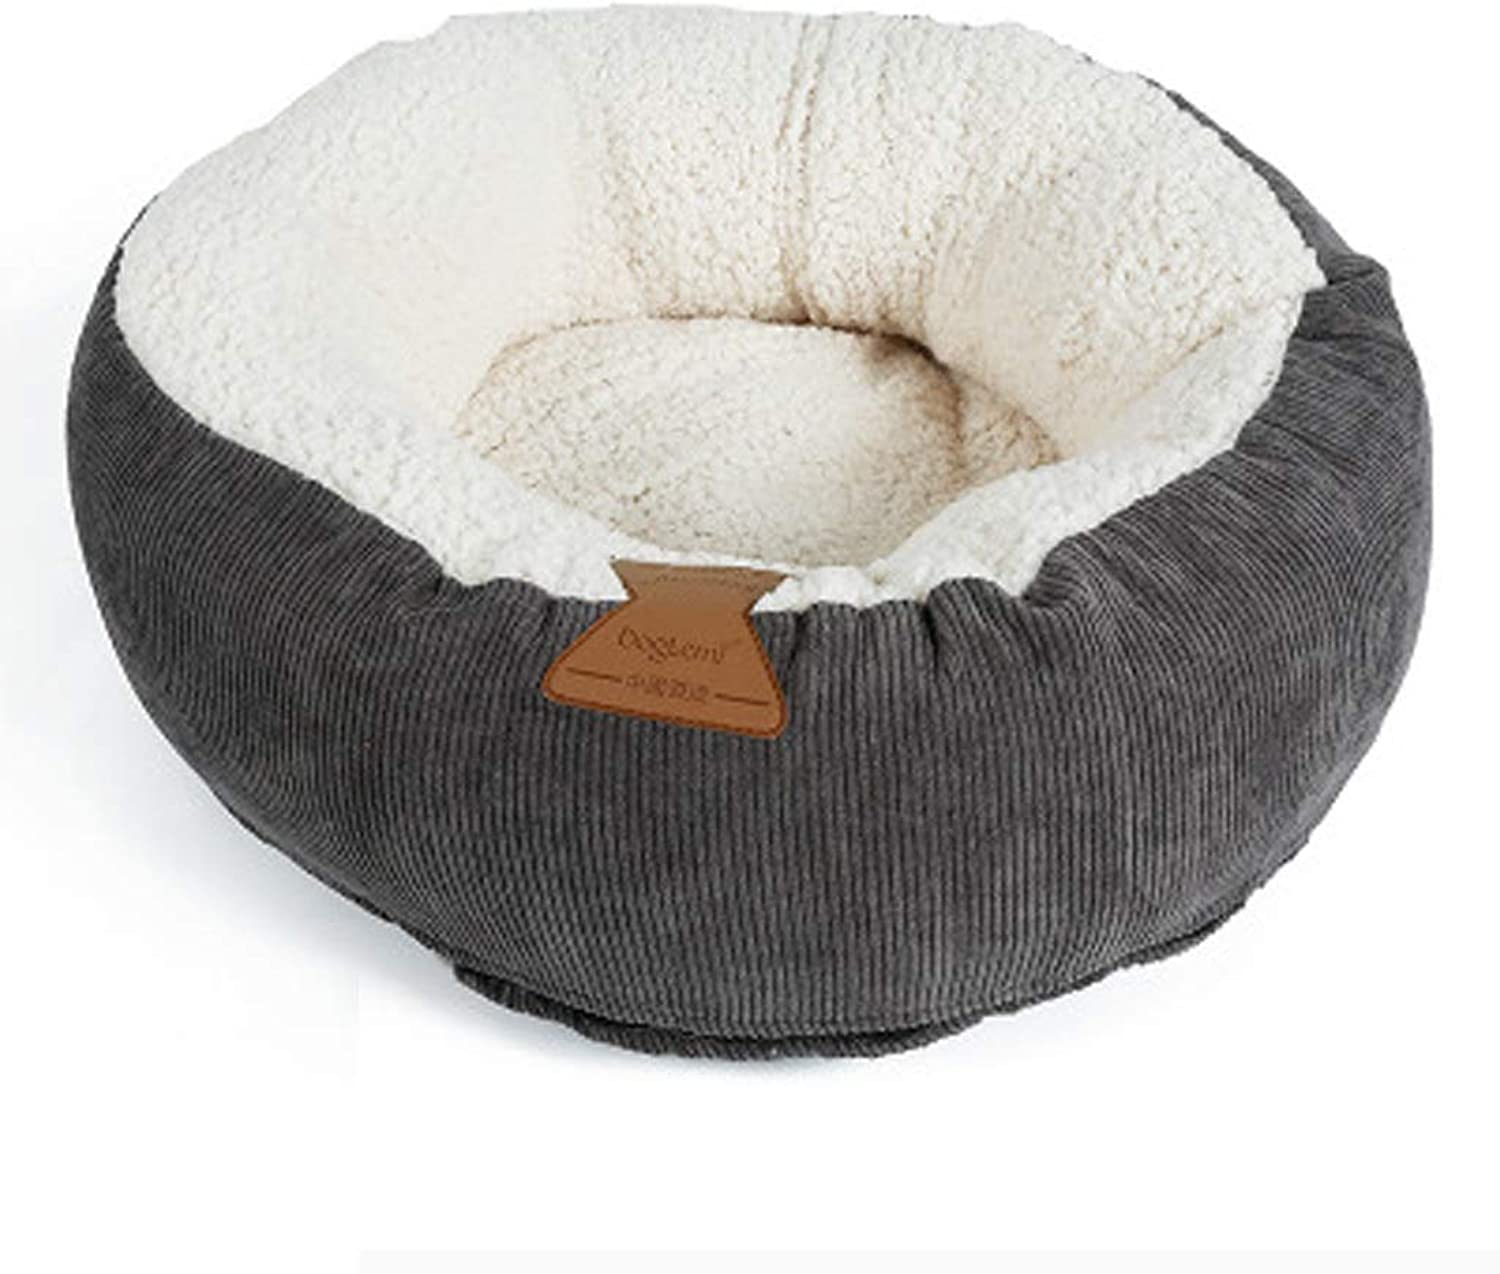 YJLGRYF Cat Nest Detachable Pet Bed Thick Cotton Corduroy Round Warm Cat House Cat Bed Cat Nest(18.5x18.5x6.6 Inch) Dog Bed